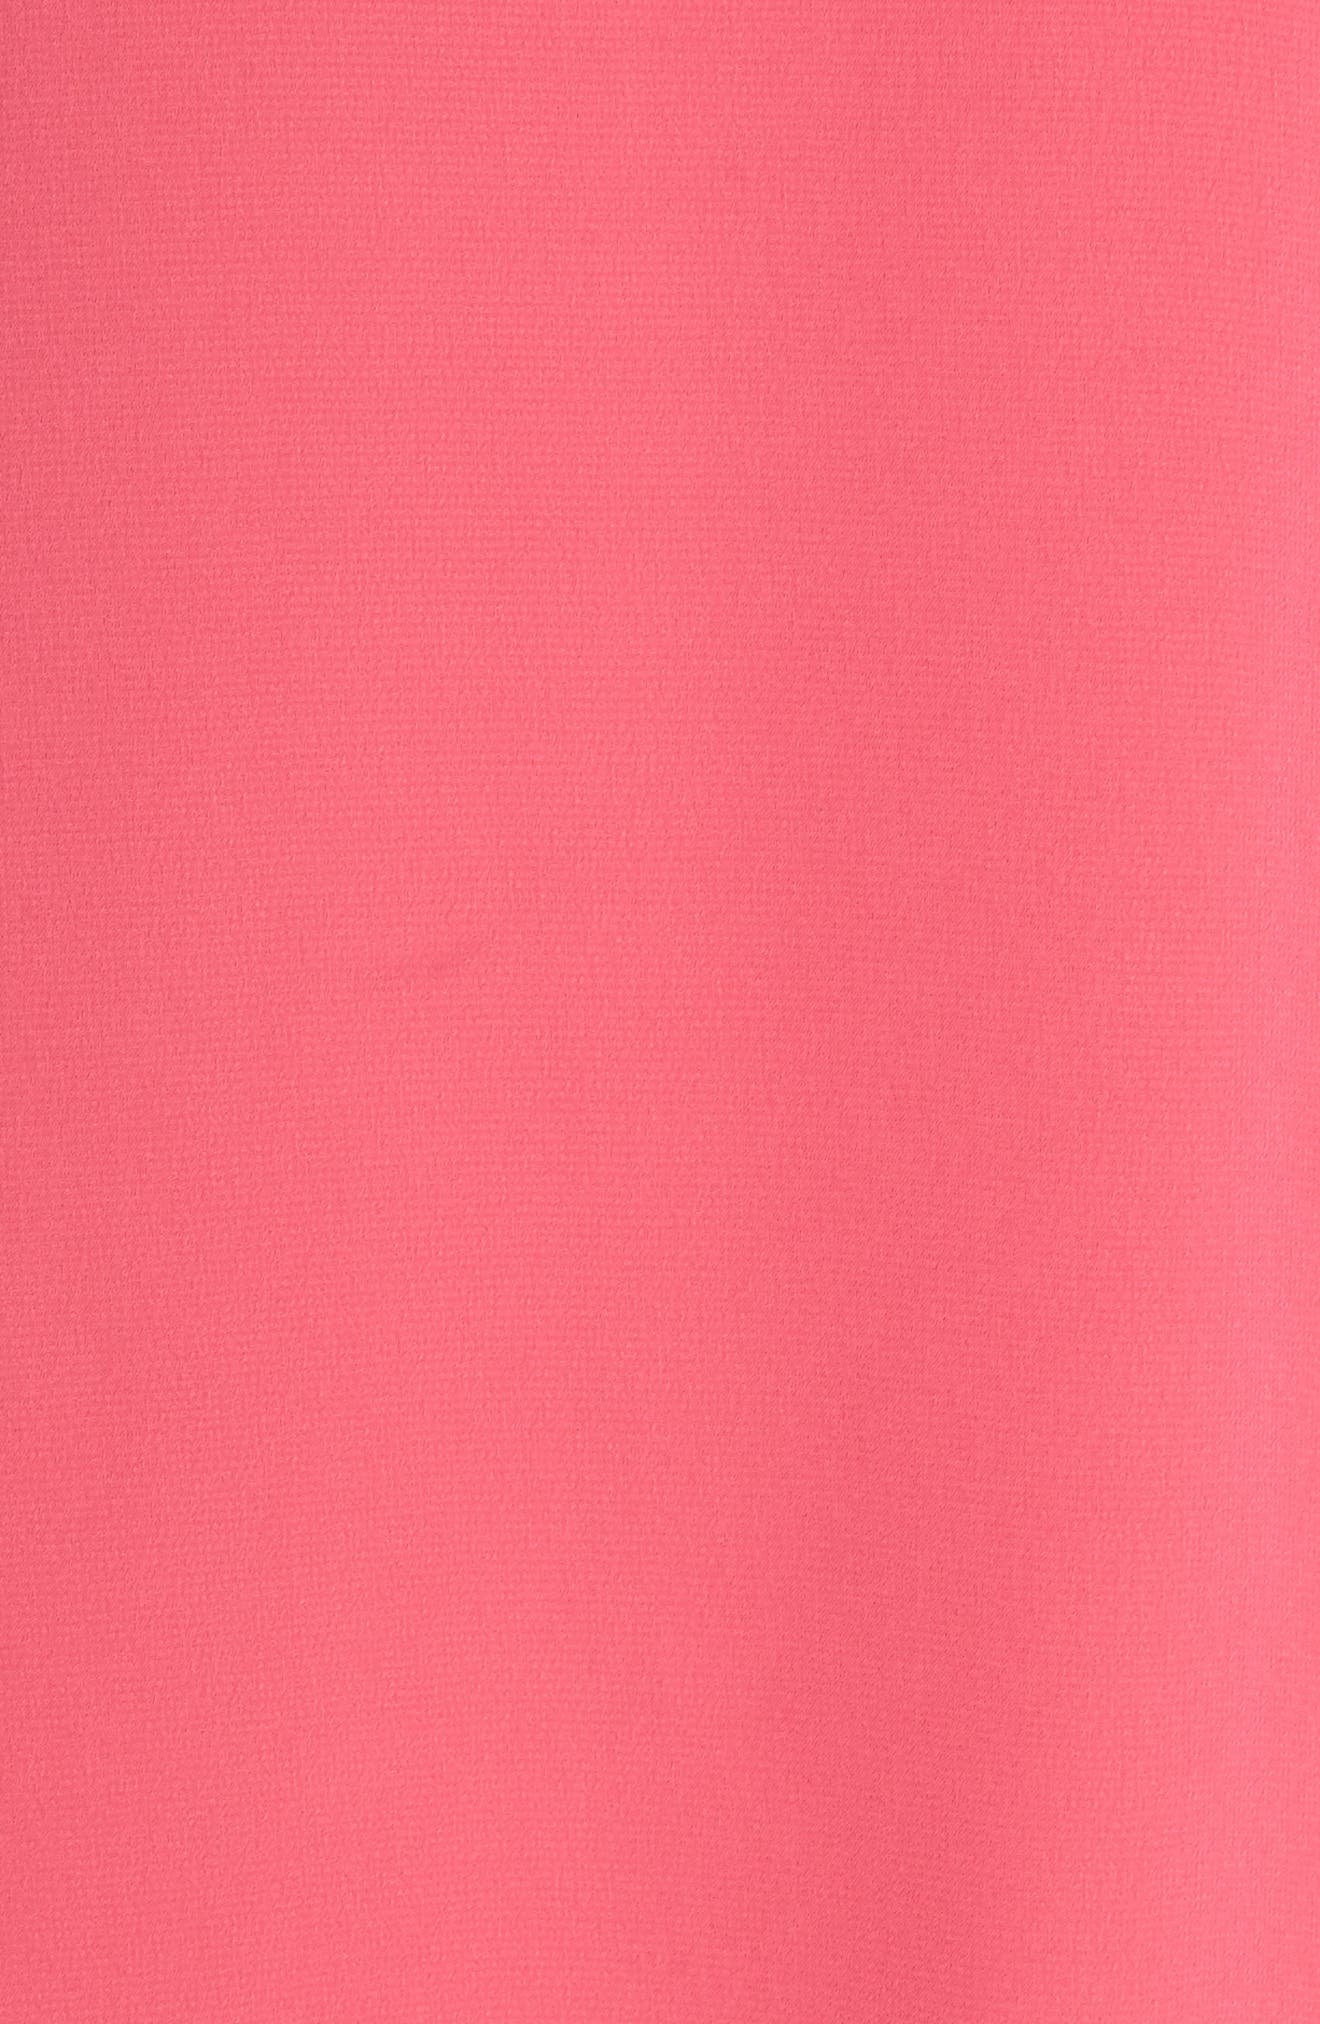 Off the Shoulder Tie-Cuff Shift Dress,                             Alternate thumbnail 6, color,                             Hot Pink